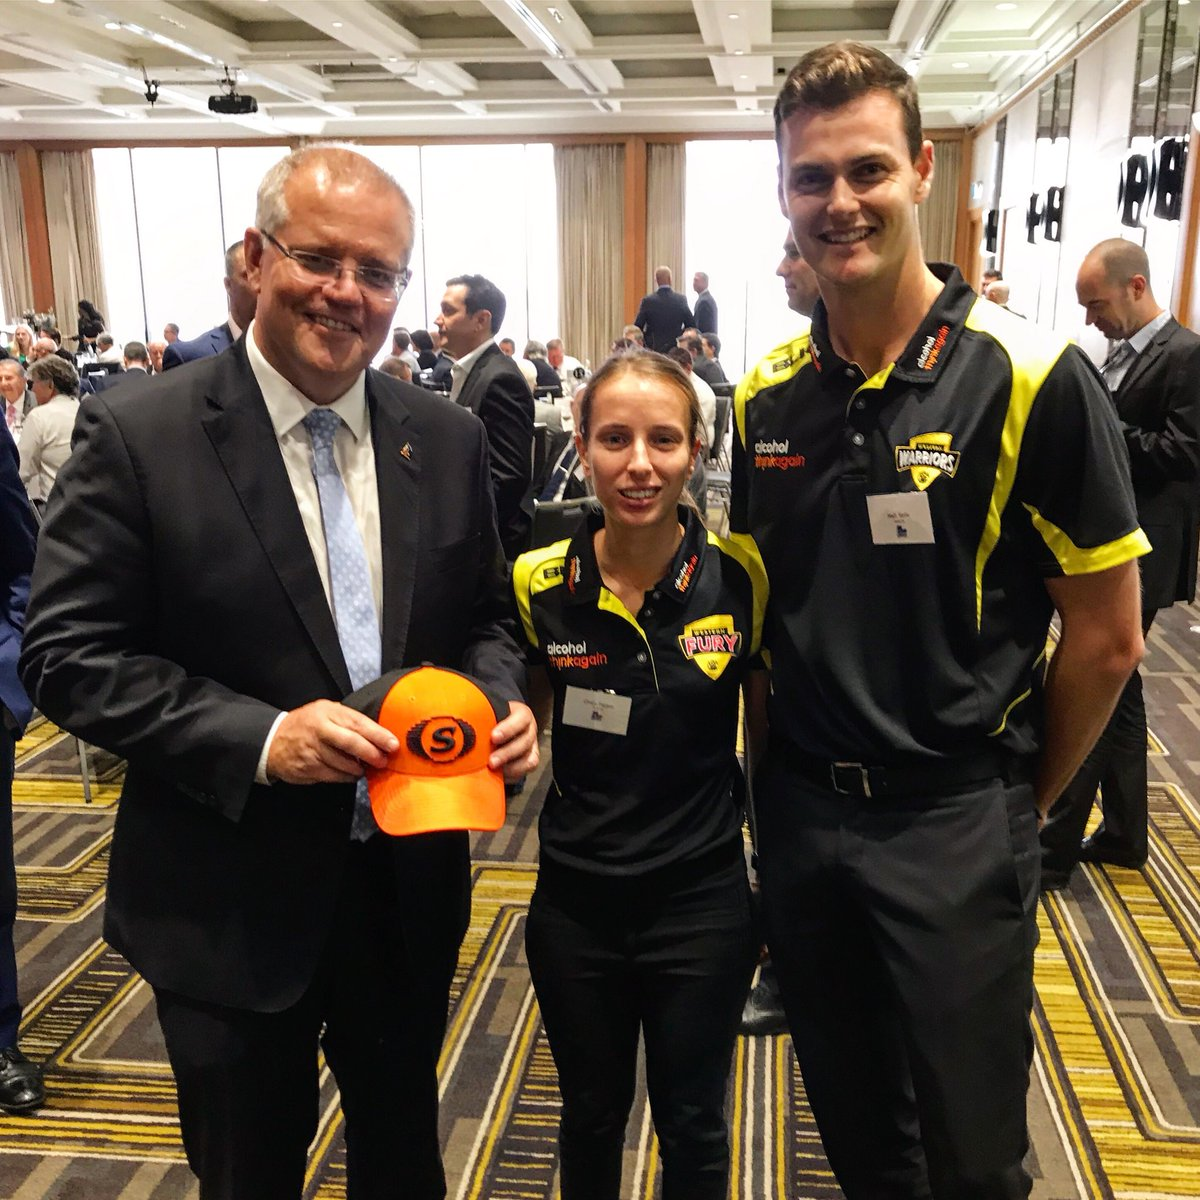 The PM adds to his sports cap collection 🧢 Great to meet you today @ScottMorrisonMP 😀 #auspol #wacafuture #wacricket #westisbest